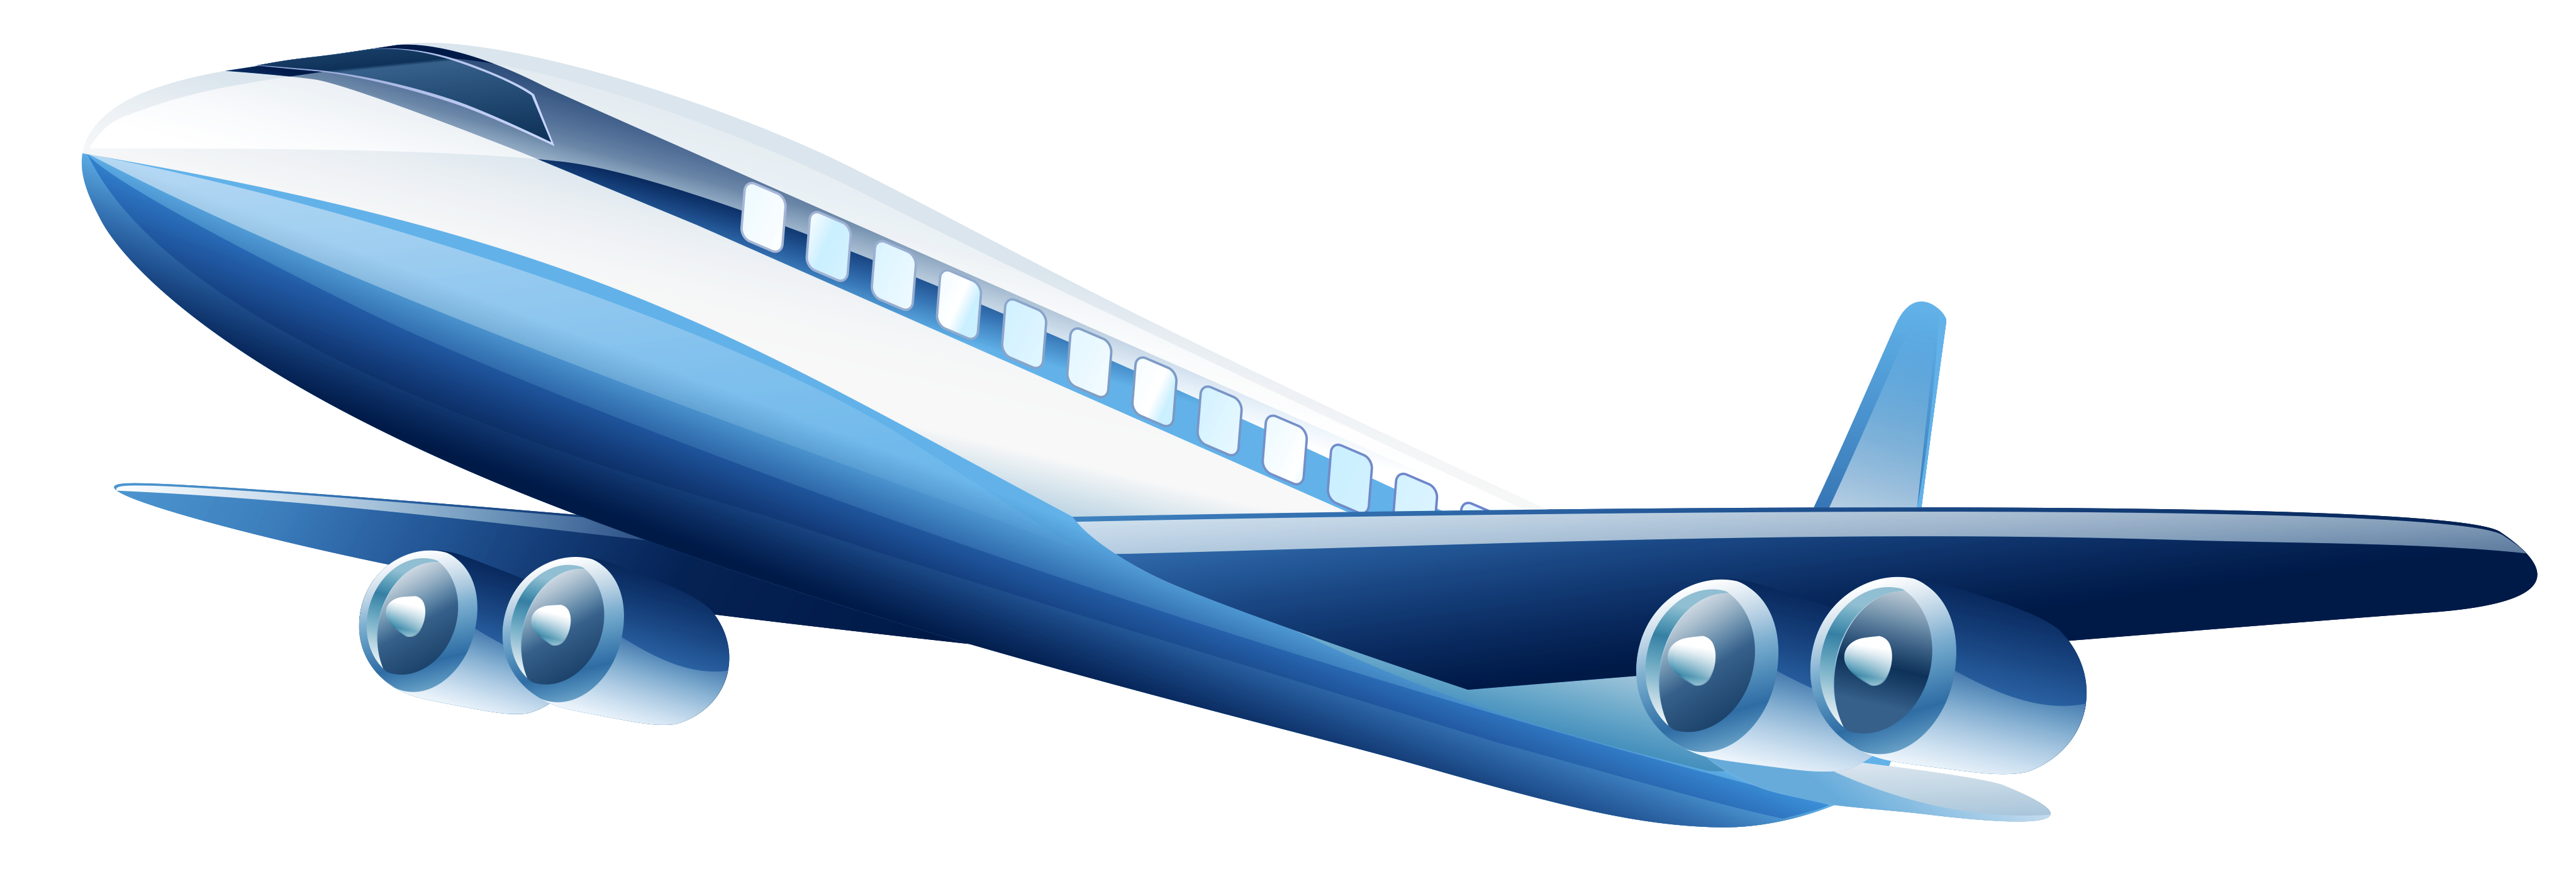 Blue Airplane PNG Clipart.